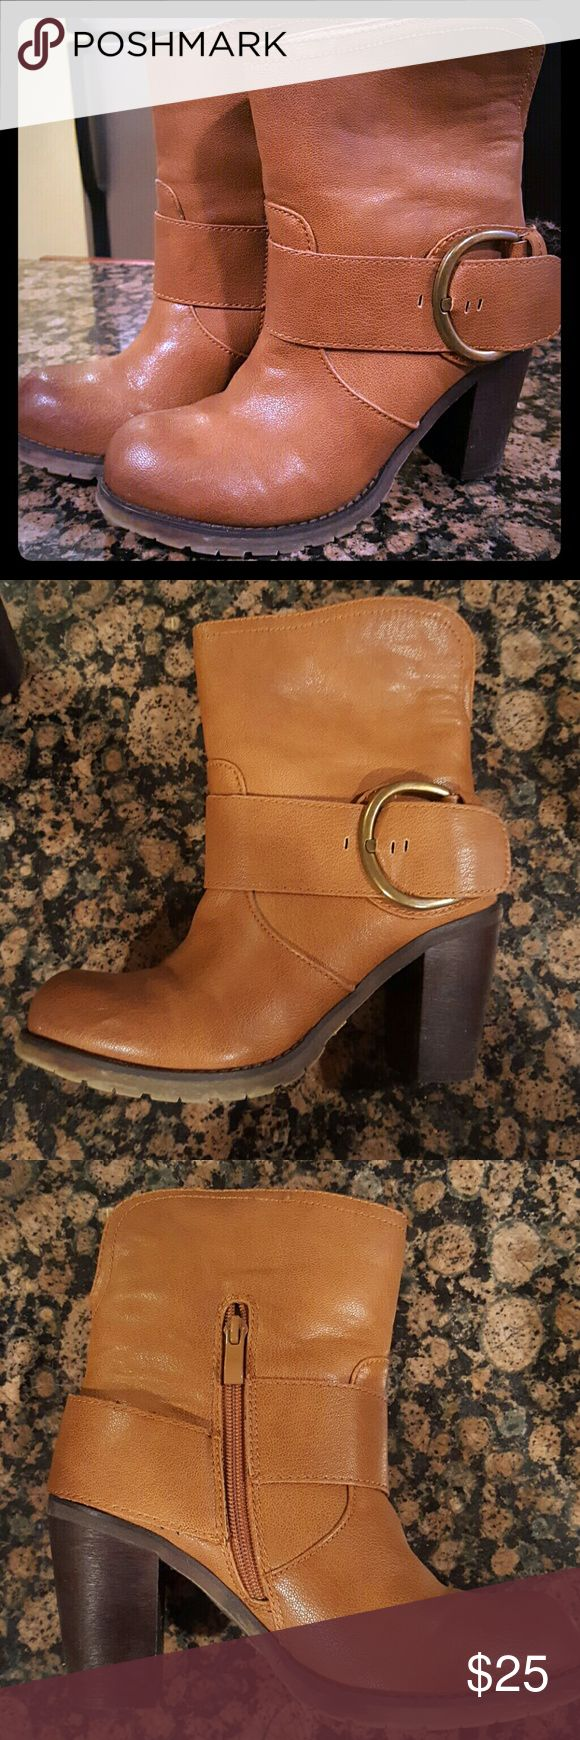 Tan/cognac boots by Very Volatile LA size 7.5 These amazing boots are in excellent condition! The toes have that faded look, 1 slight scuff that I will add some shoes polish to before shipping. See photos. Size 7.5 Very Volatile LA Shoes Heeled Boots